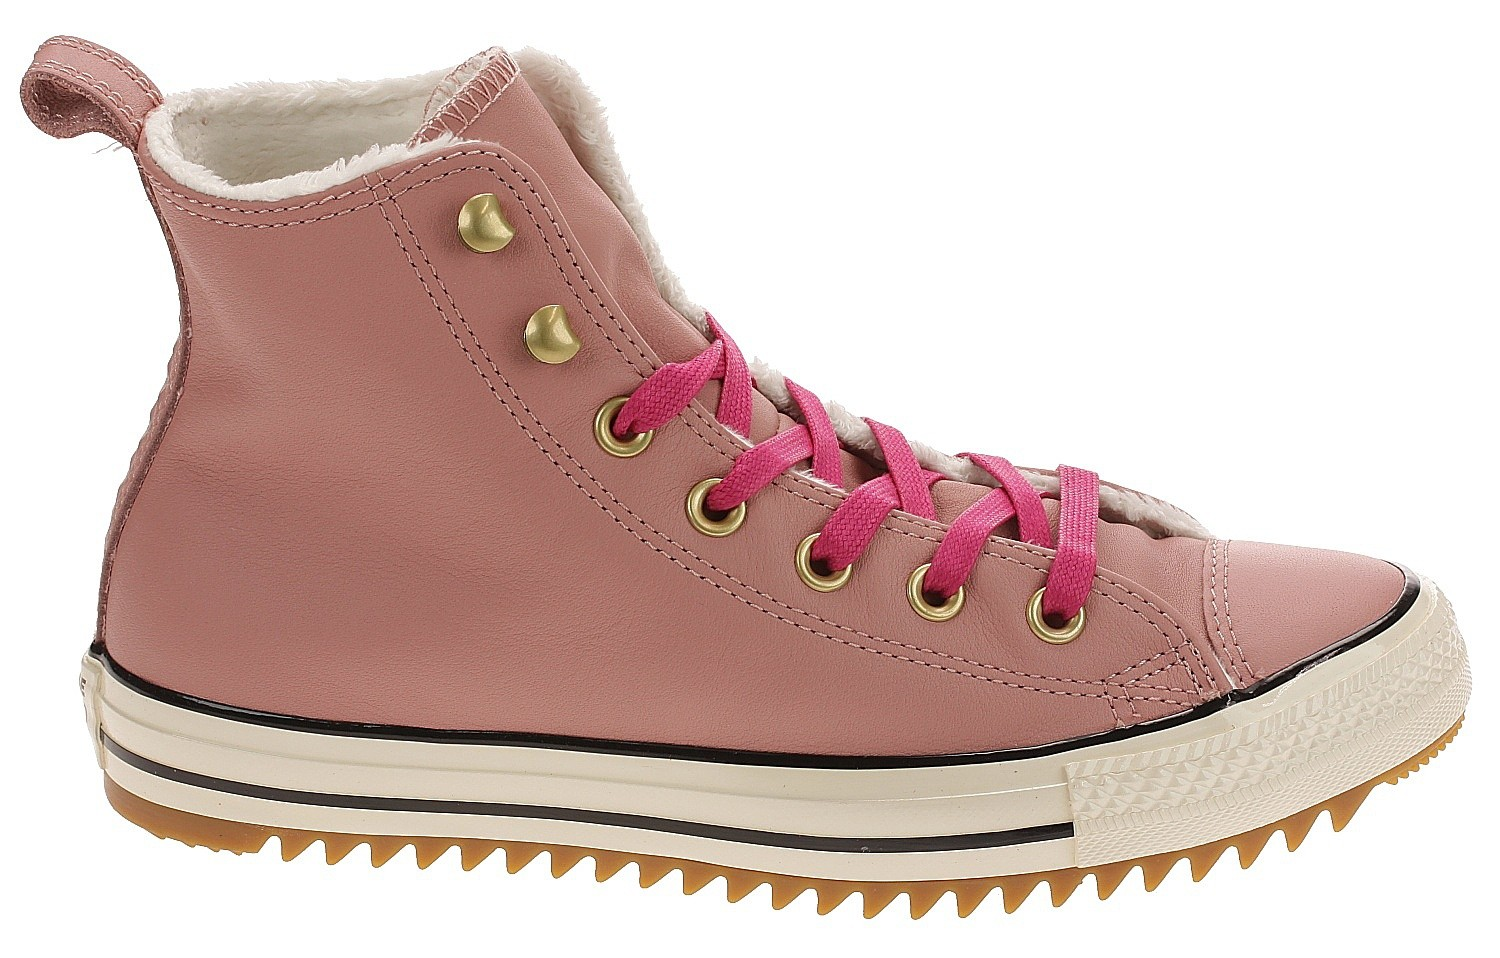 Converse Chuck Shoes Taylor Star Hiker Pink All Hi 162477rust UGSMVqzp